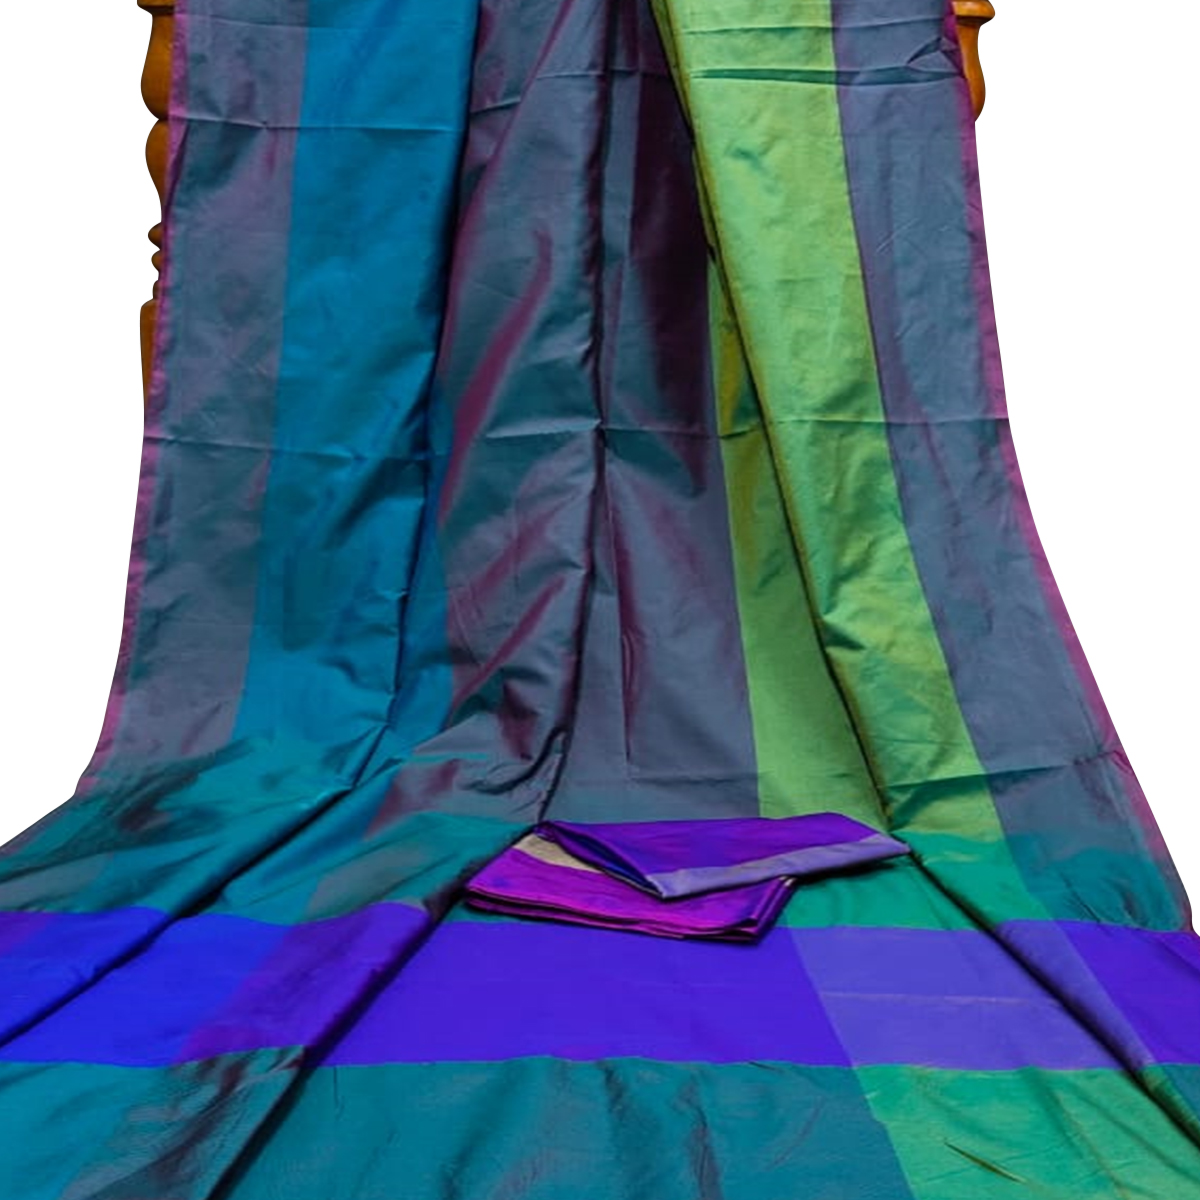 Preferable Turquoise Colored Festive Wear Woven Silk Saree With Tassels